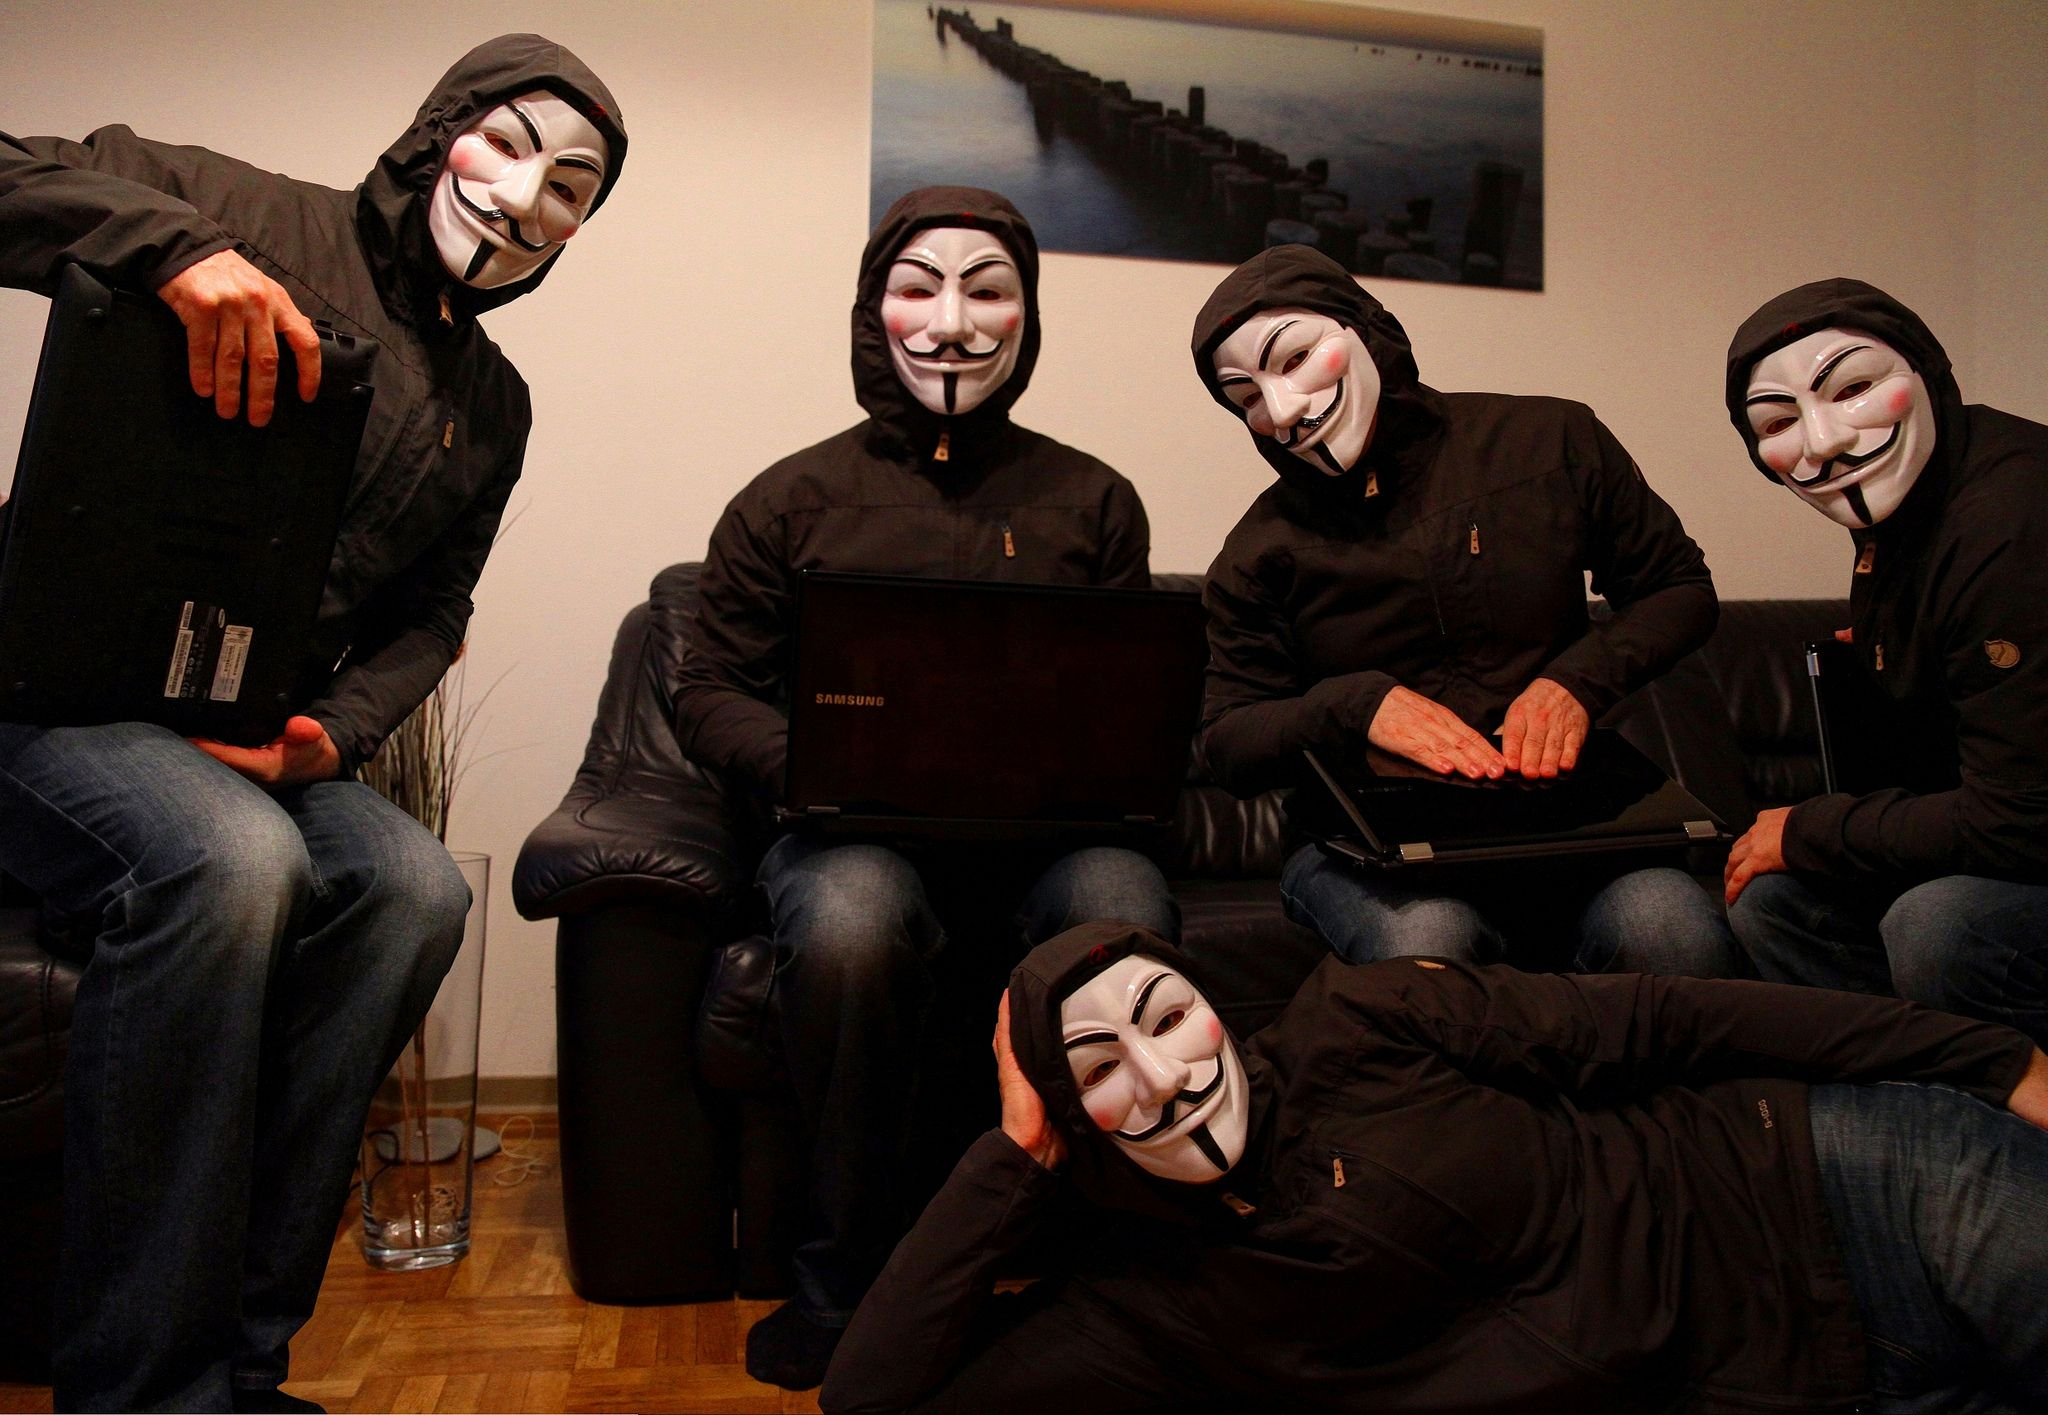 """https://flic.kr/p/dmdC7w 